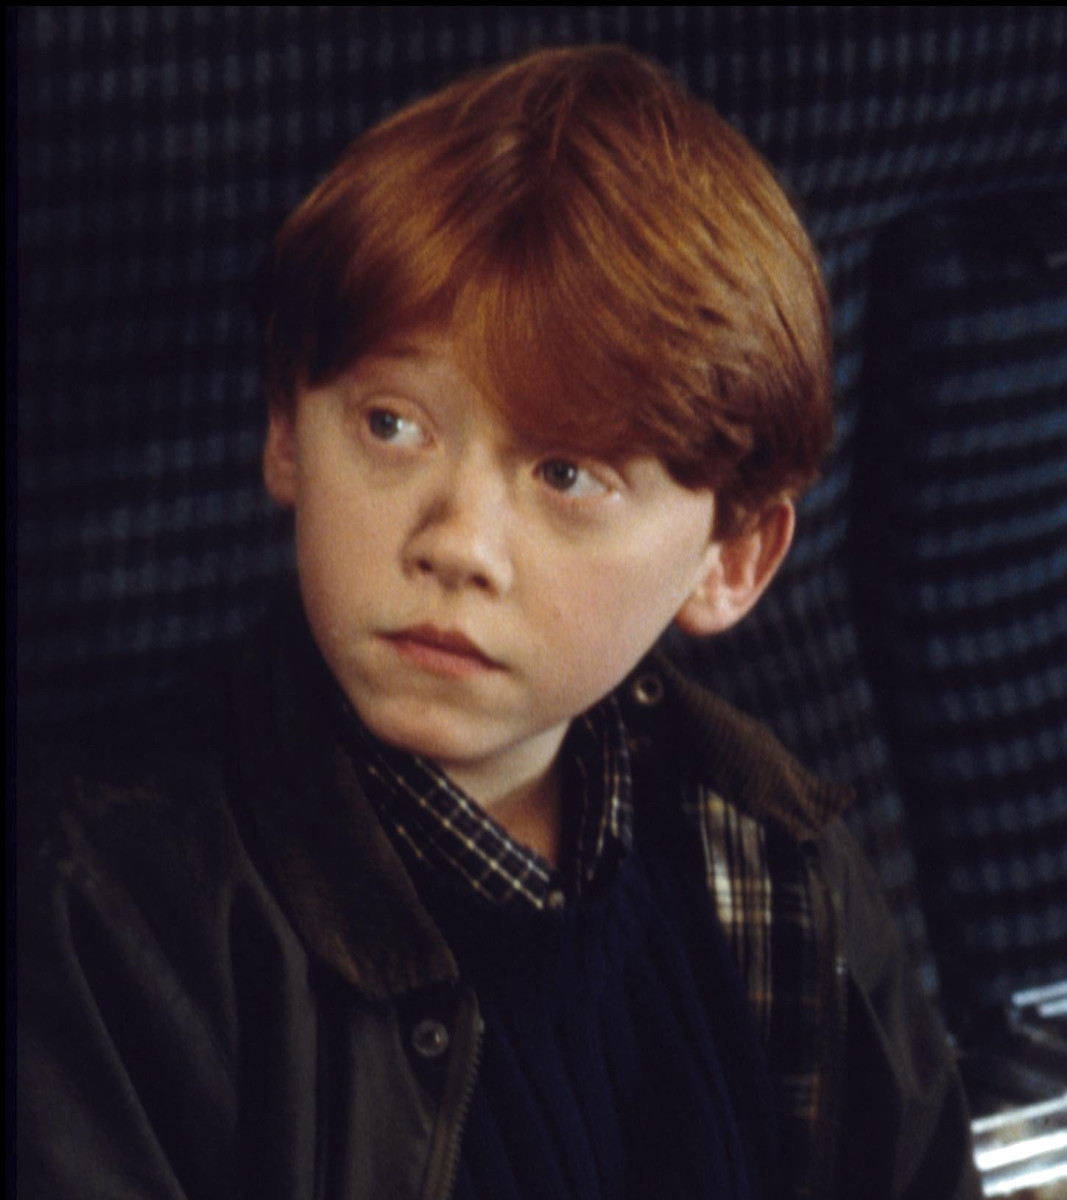 Young Ron Weasley Harry Potter Photo